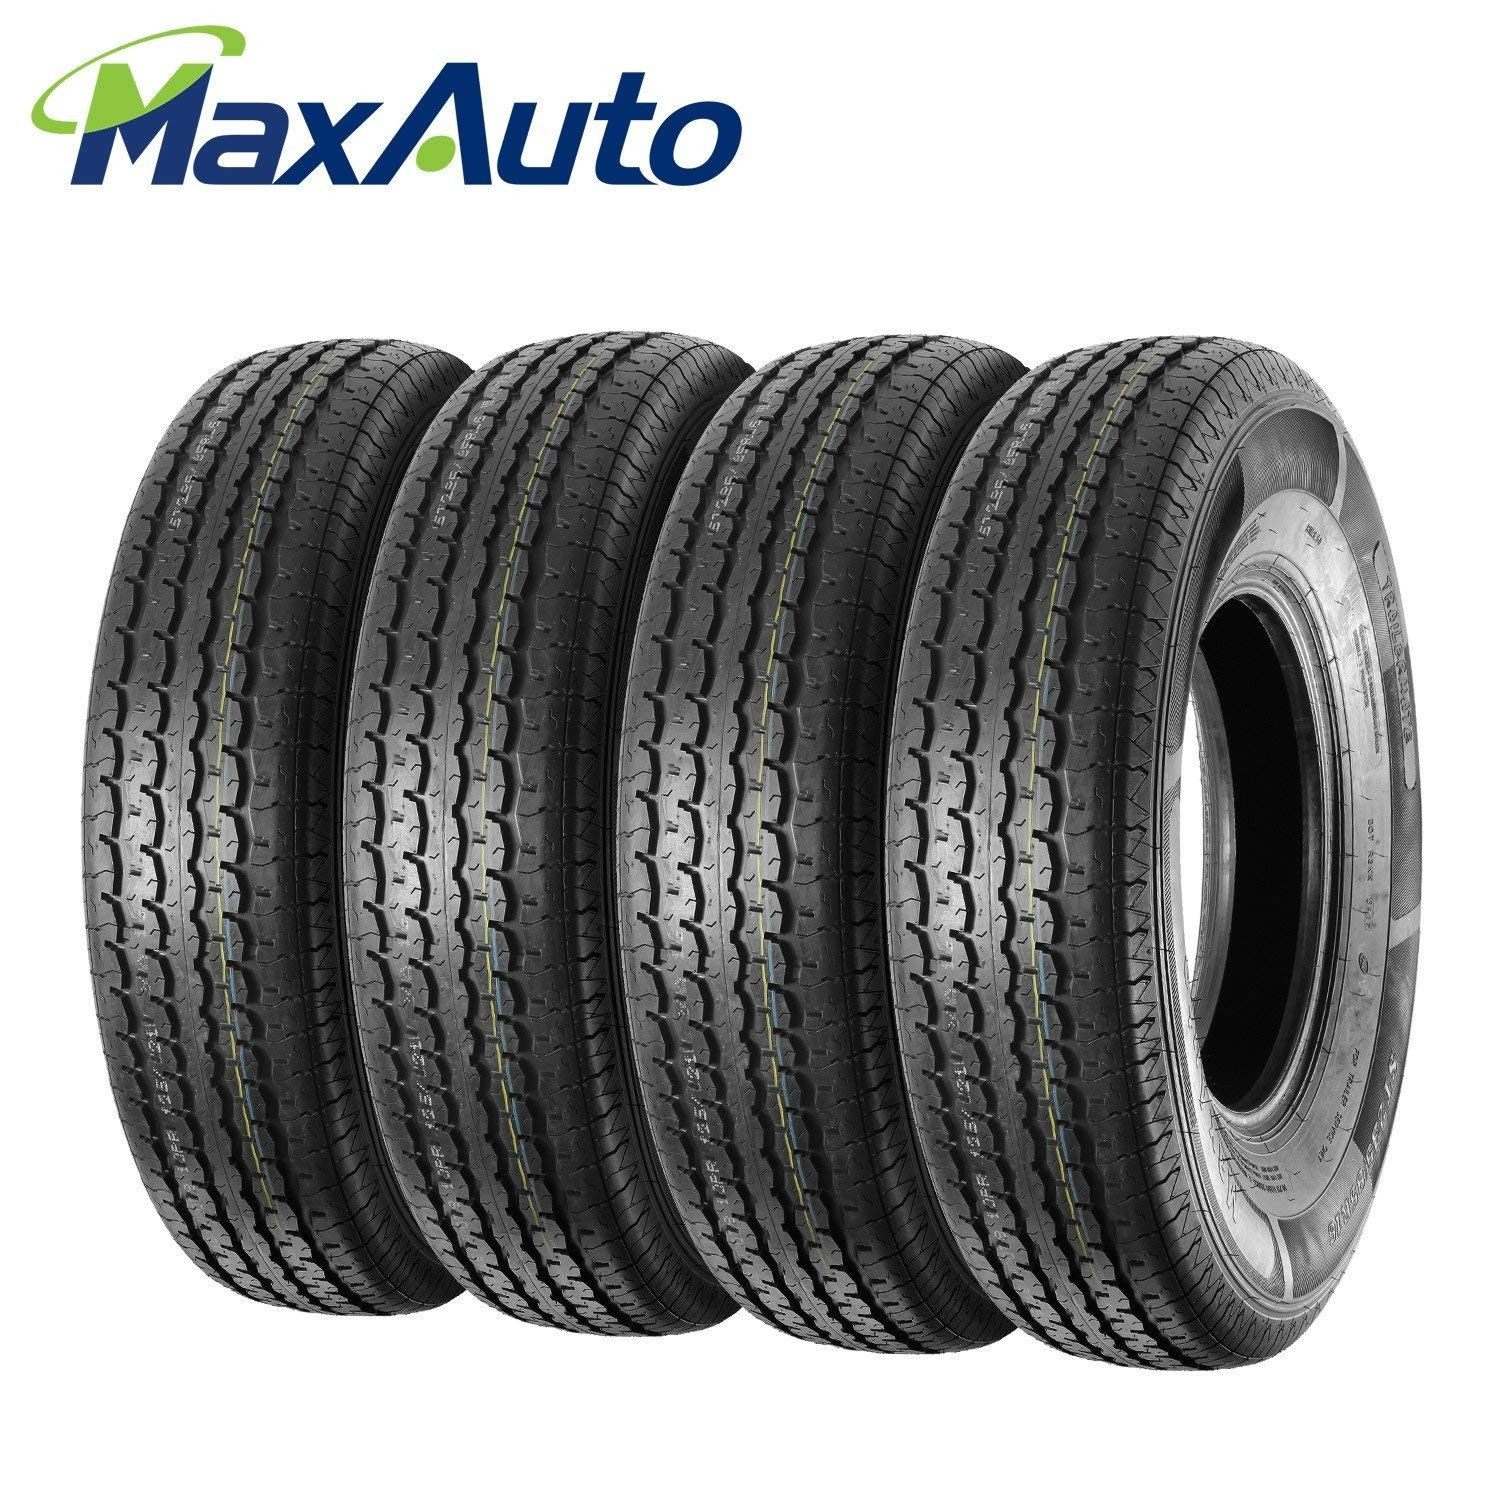 Car Tire Rotation Diagram Amazon Set Of 4 St 175 80r13 8ply Trailer Tires Load Range D Of Car Tire Rotation Diagram